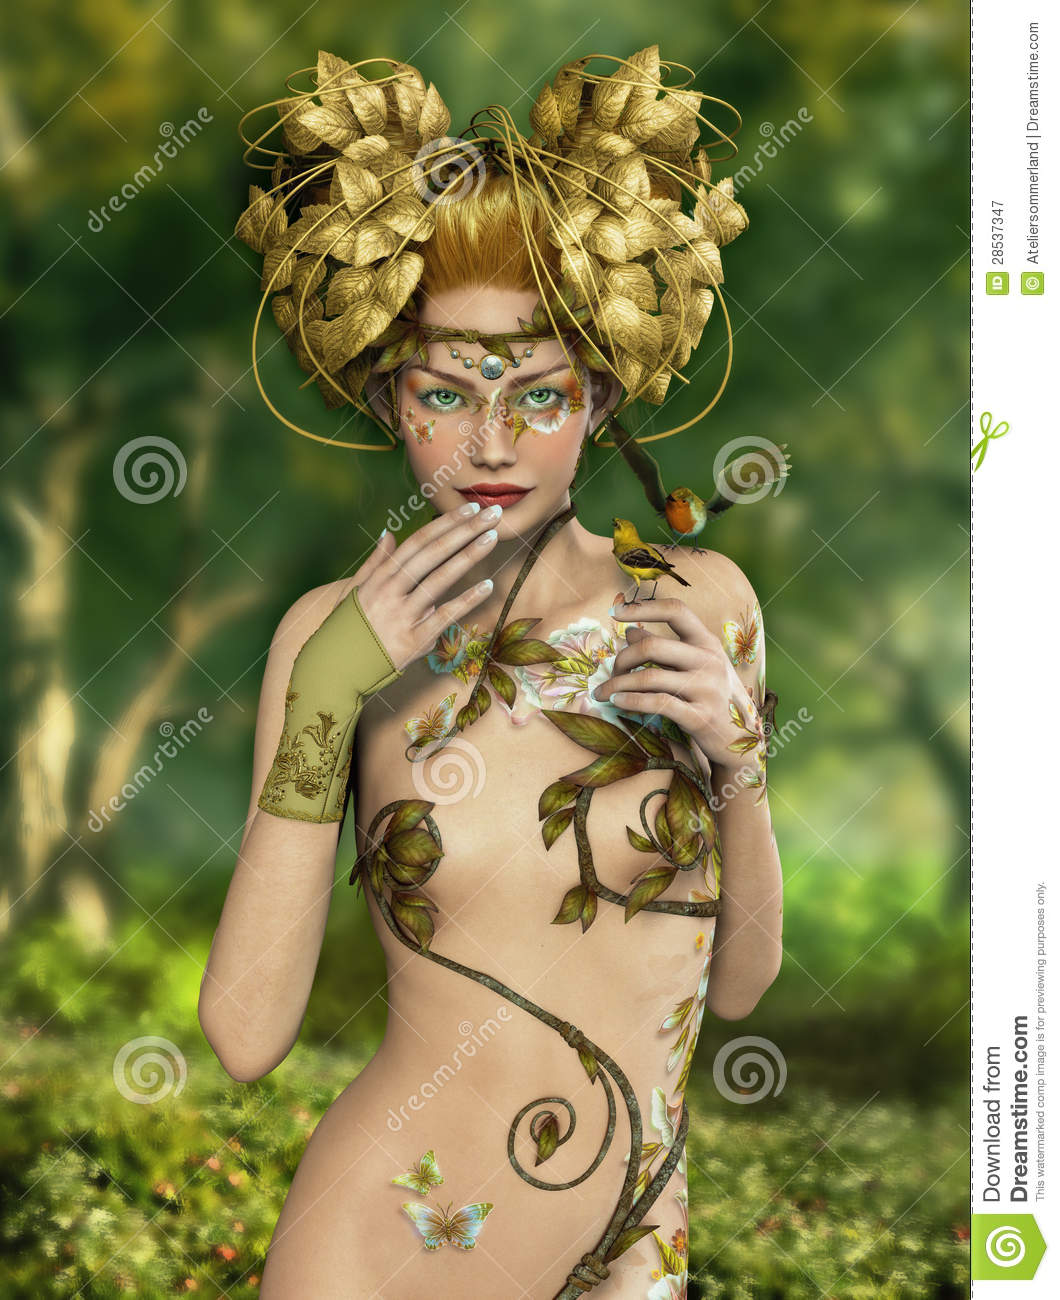 Forest Nymph Royalty Free Stock Photography - Image: 28537347